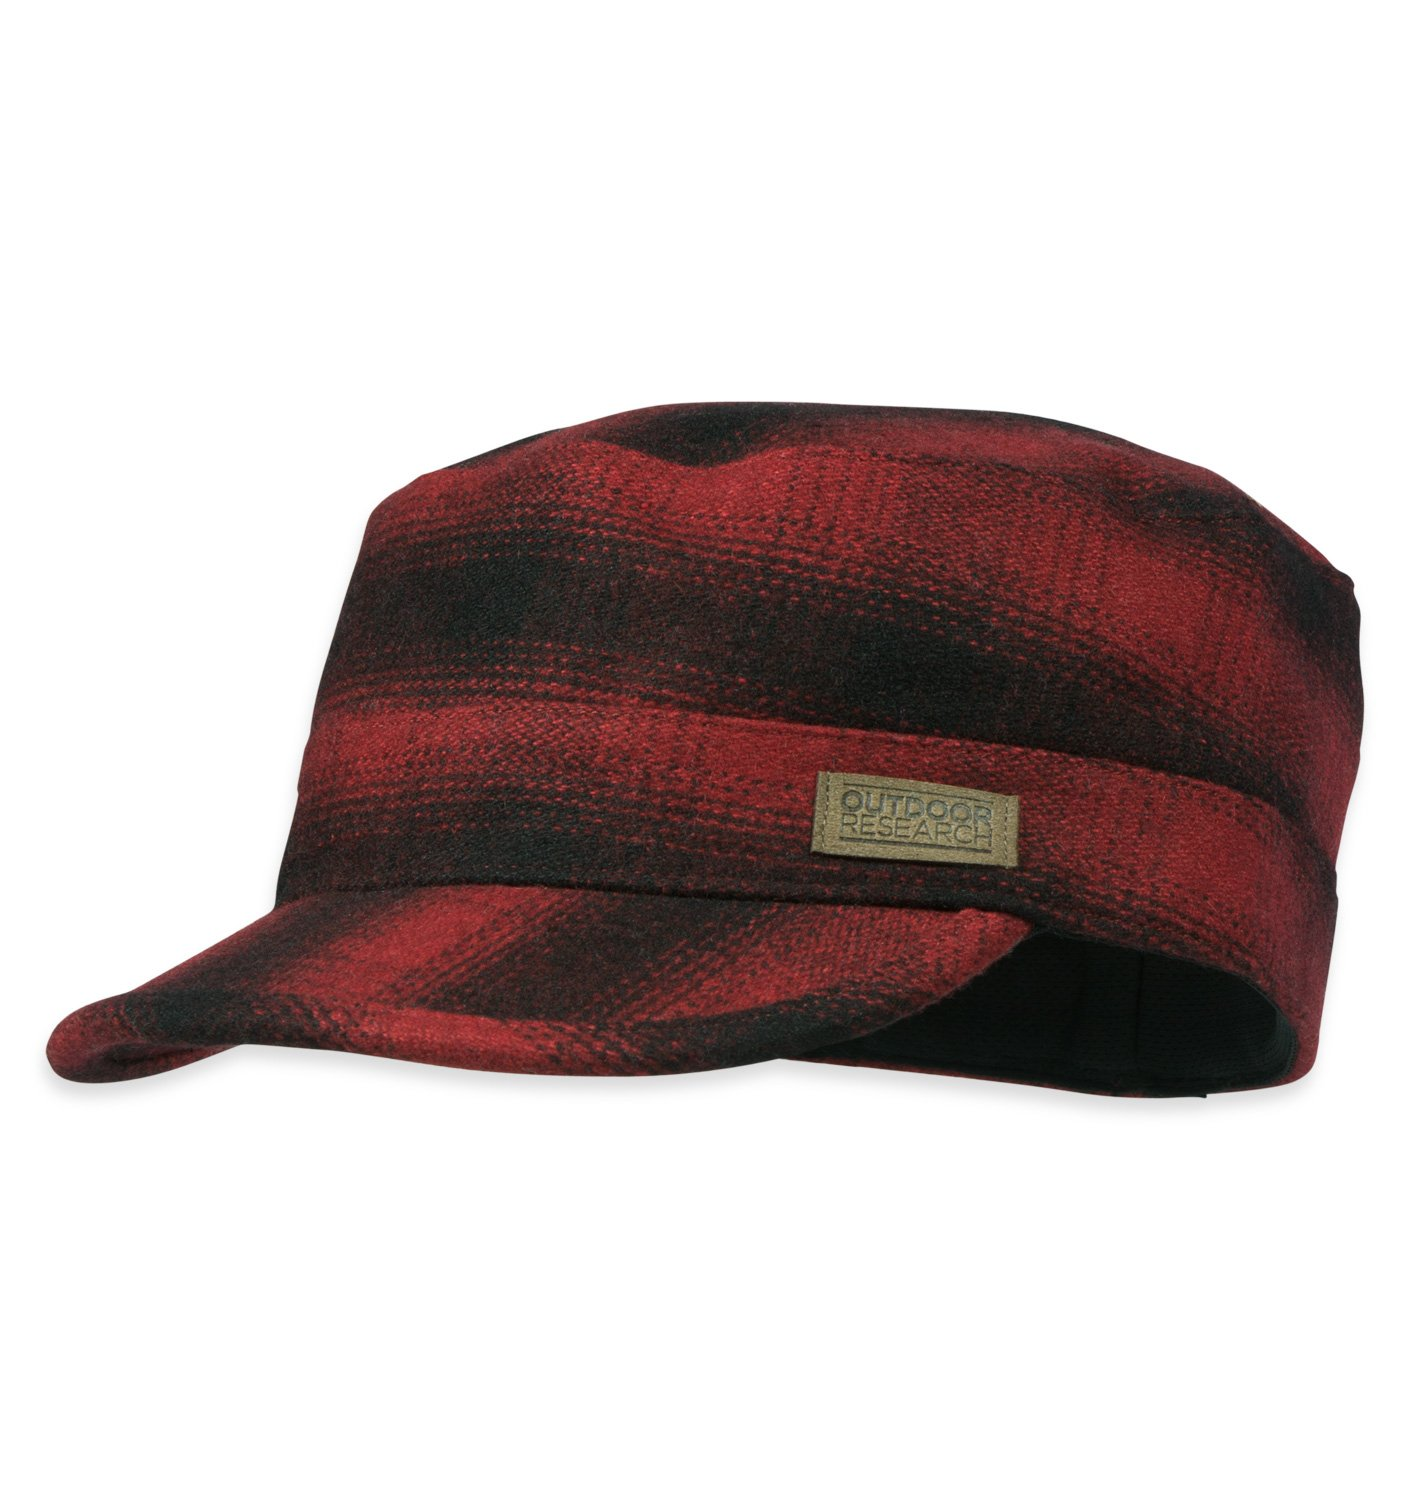 Outdoor Research Kettle Cap, Redwood/Black, X-Large